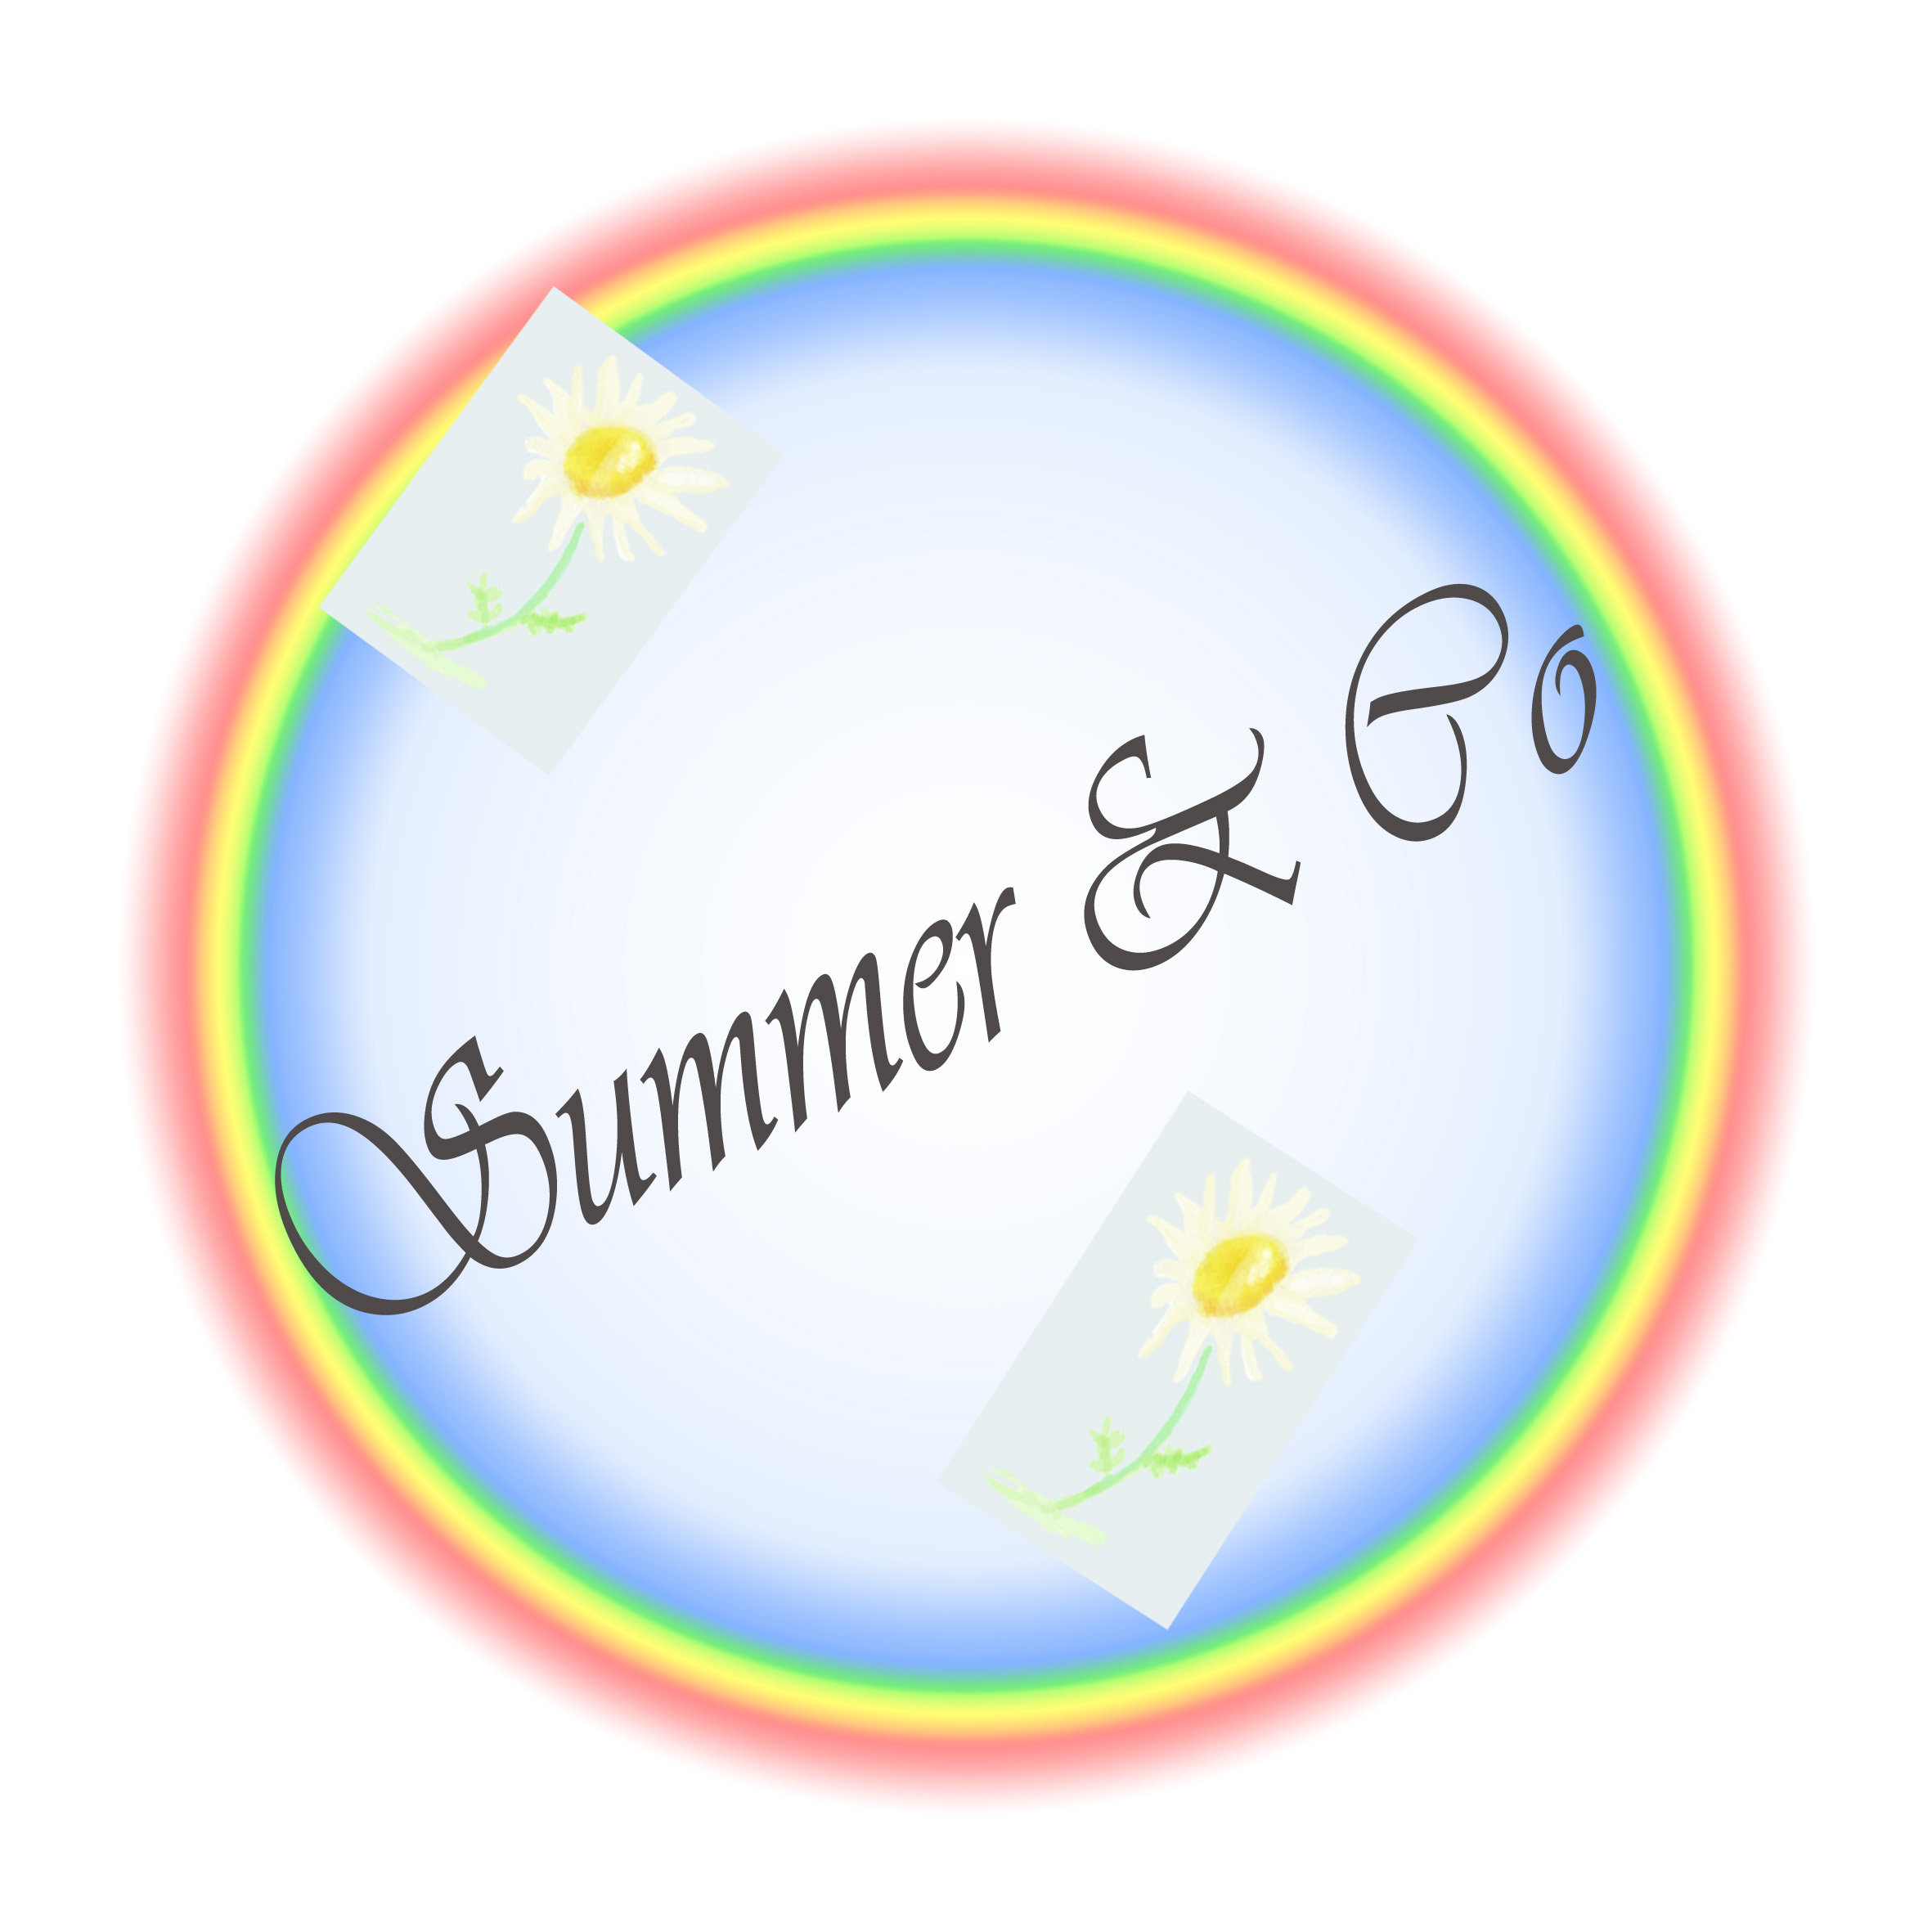 Summer and Co Designs